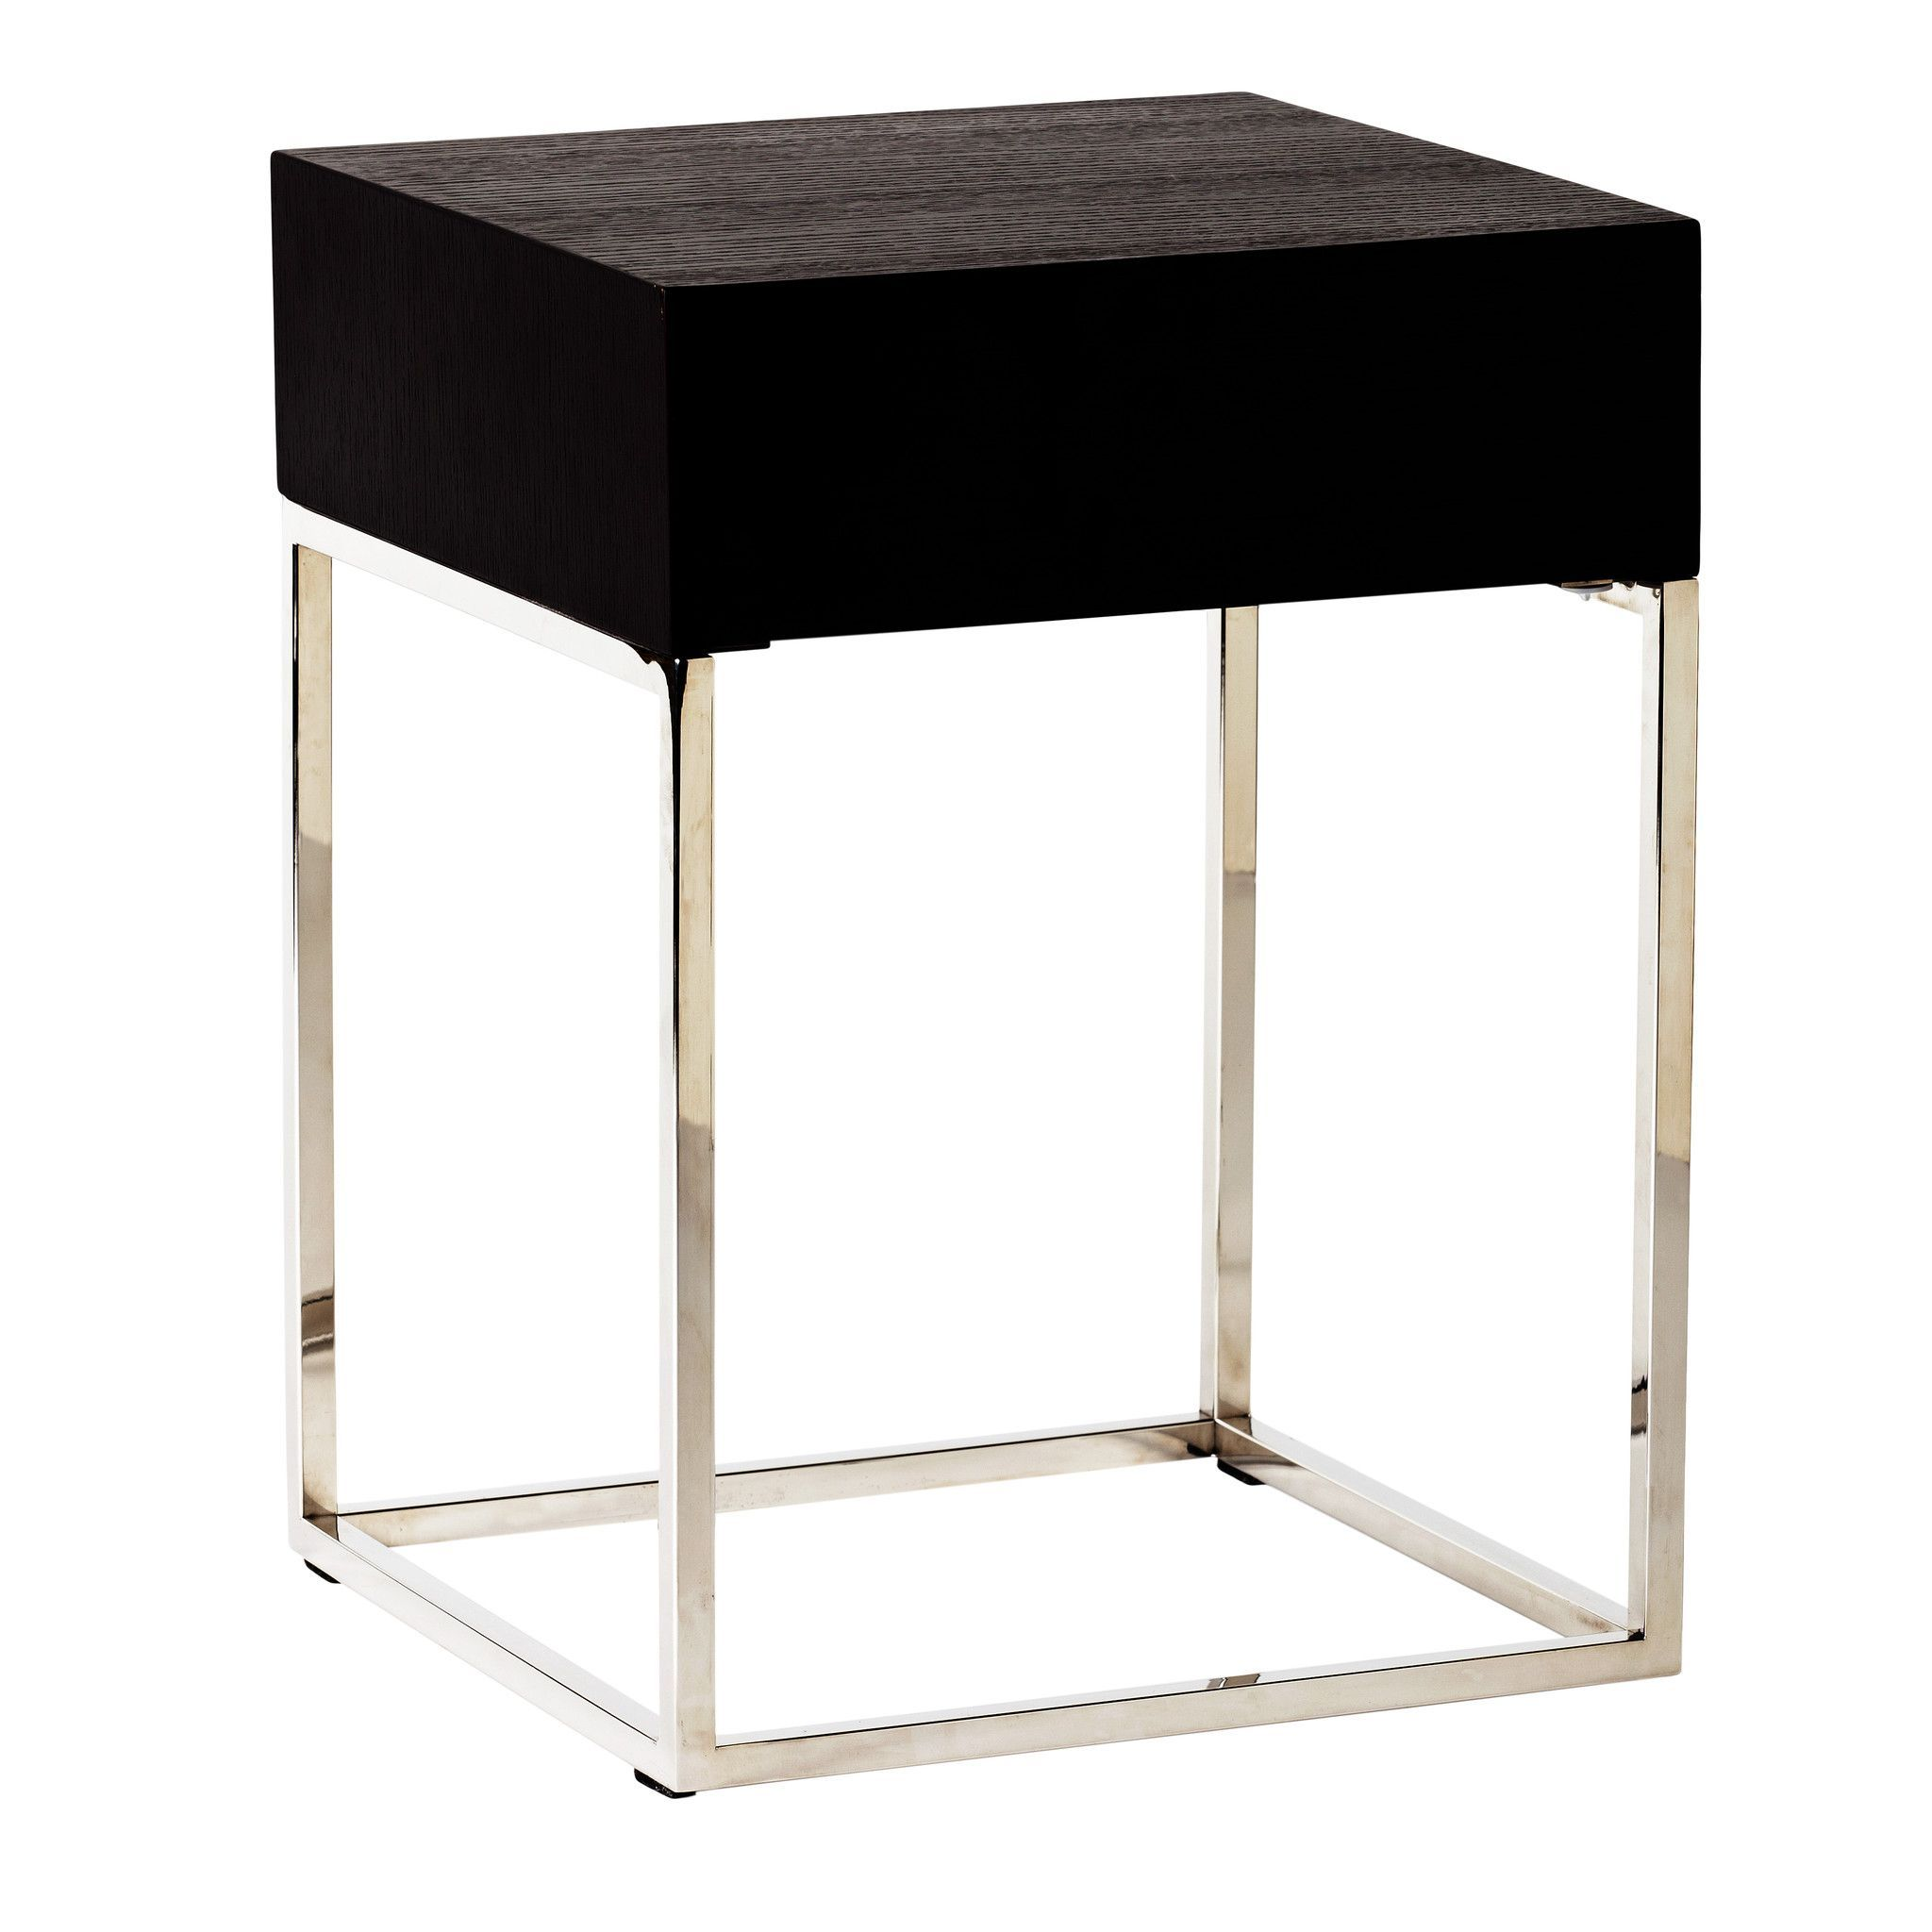 chio side table black oak products janika accent sidetable diy base for glass top cabinet with doors grey wood ikea desk kitchen breakfast pottery barn wall wooden threshold